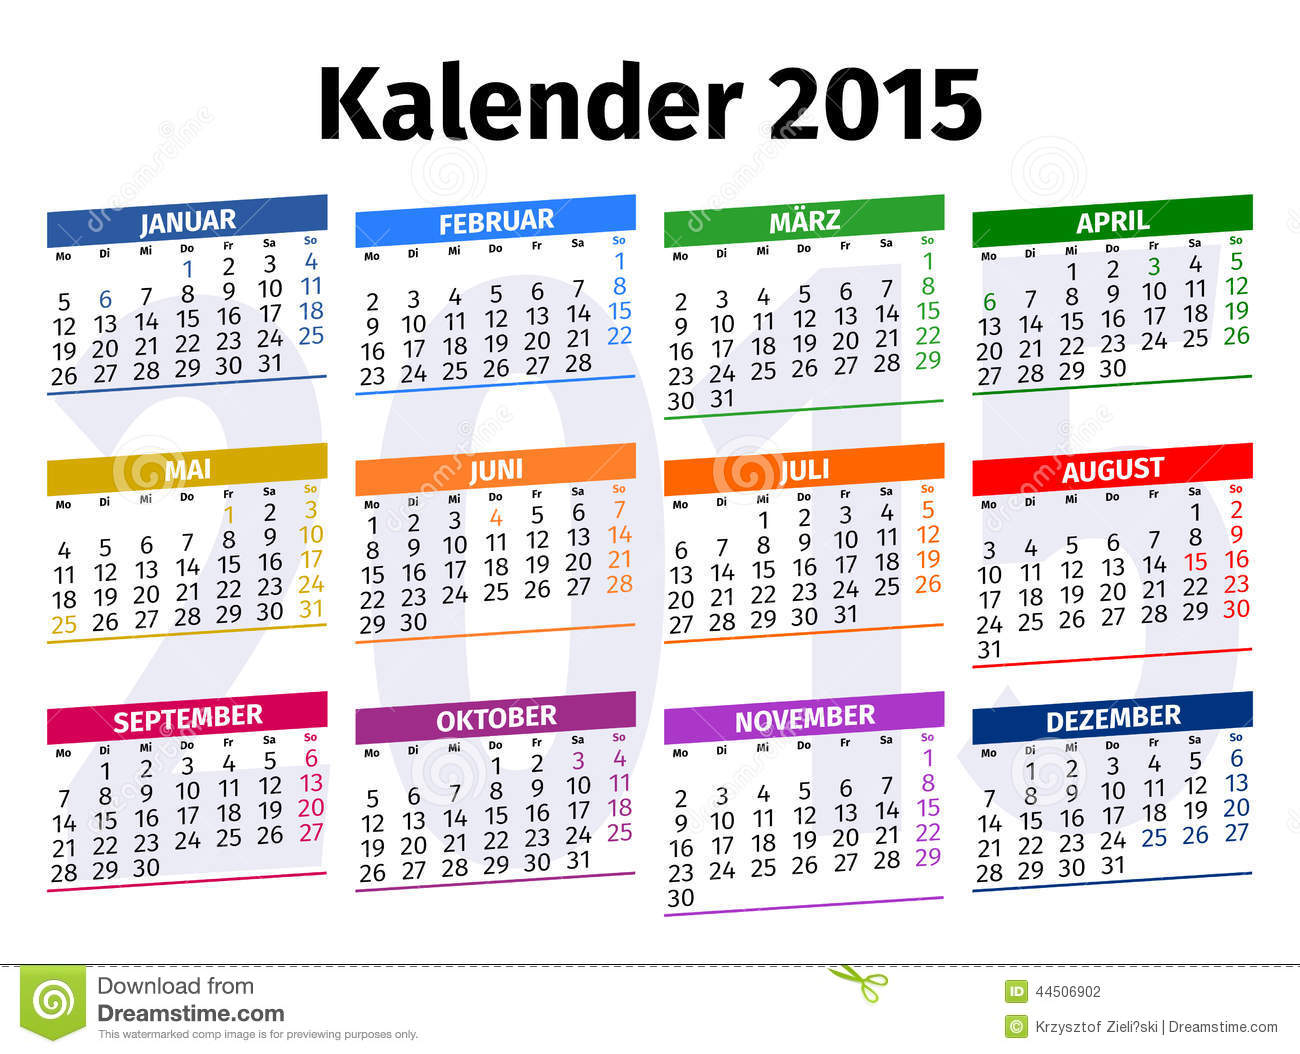 duitse kalender 2015 stock illustratie afbeelding. Black Bedroom Furniture Sets. Home Design Ideas